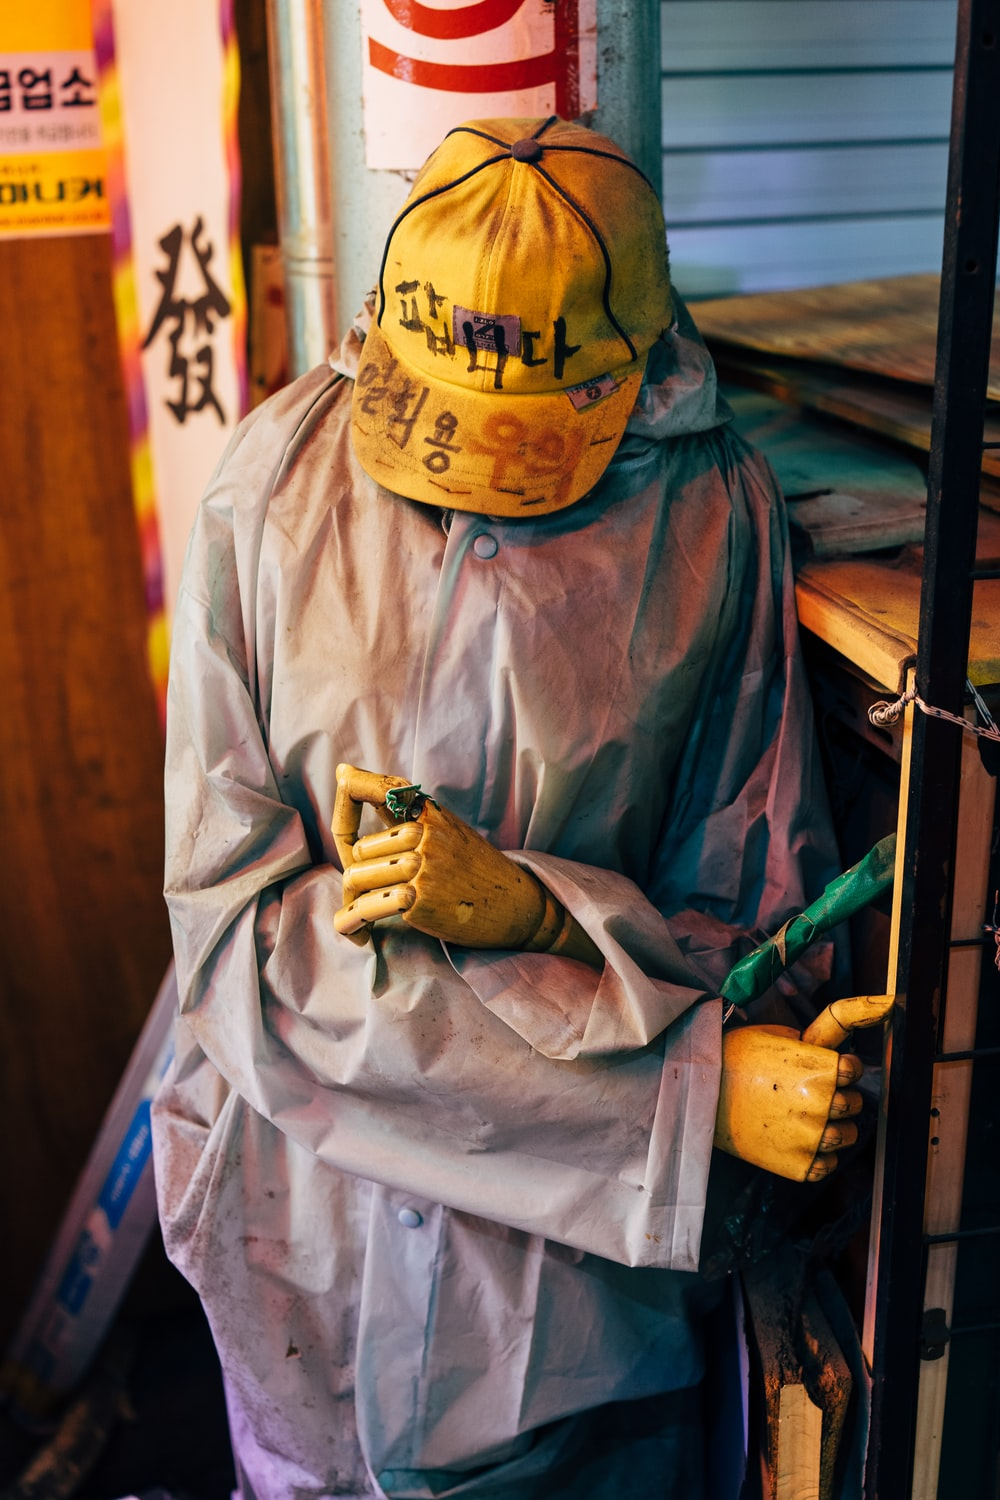 man in yellow and black fitted cap and white robe